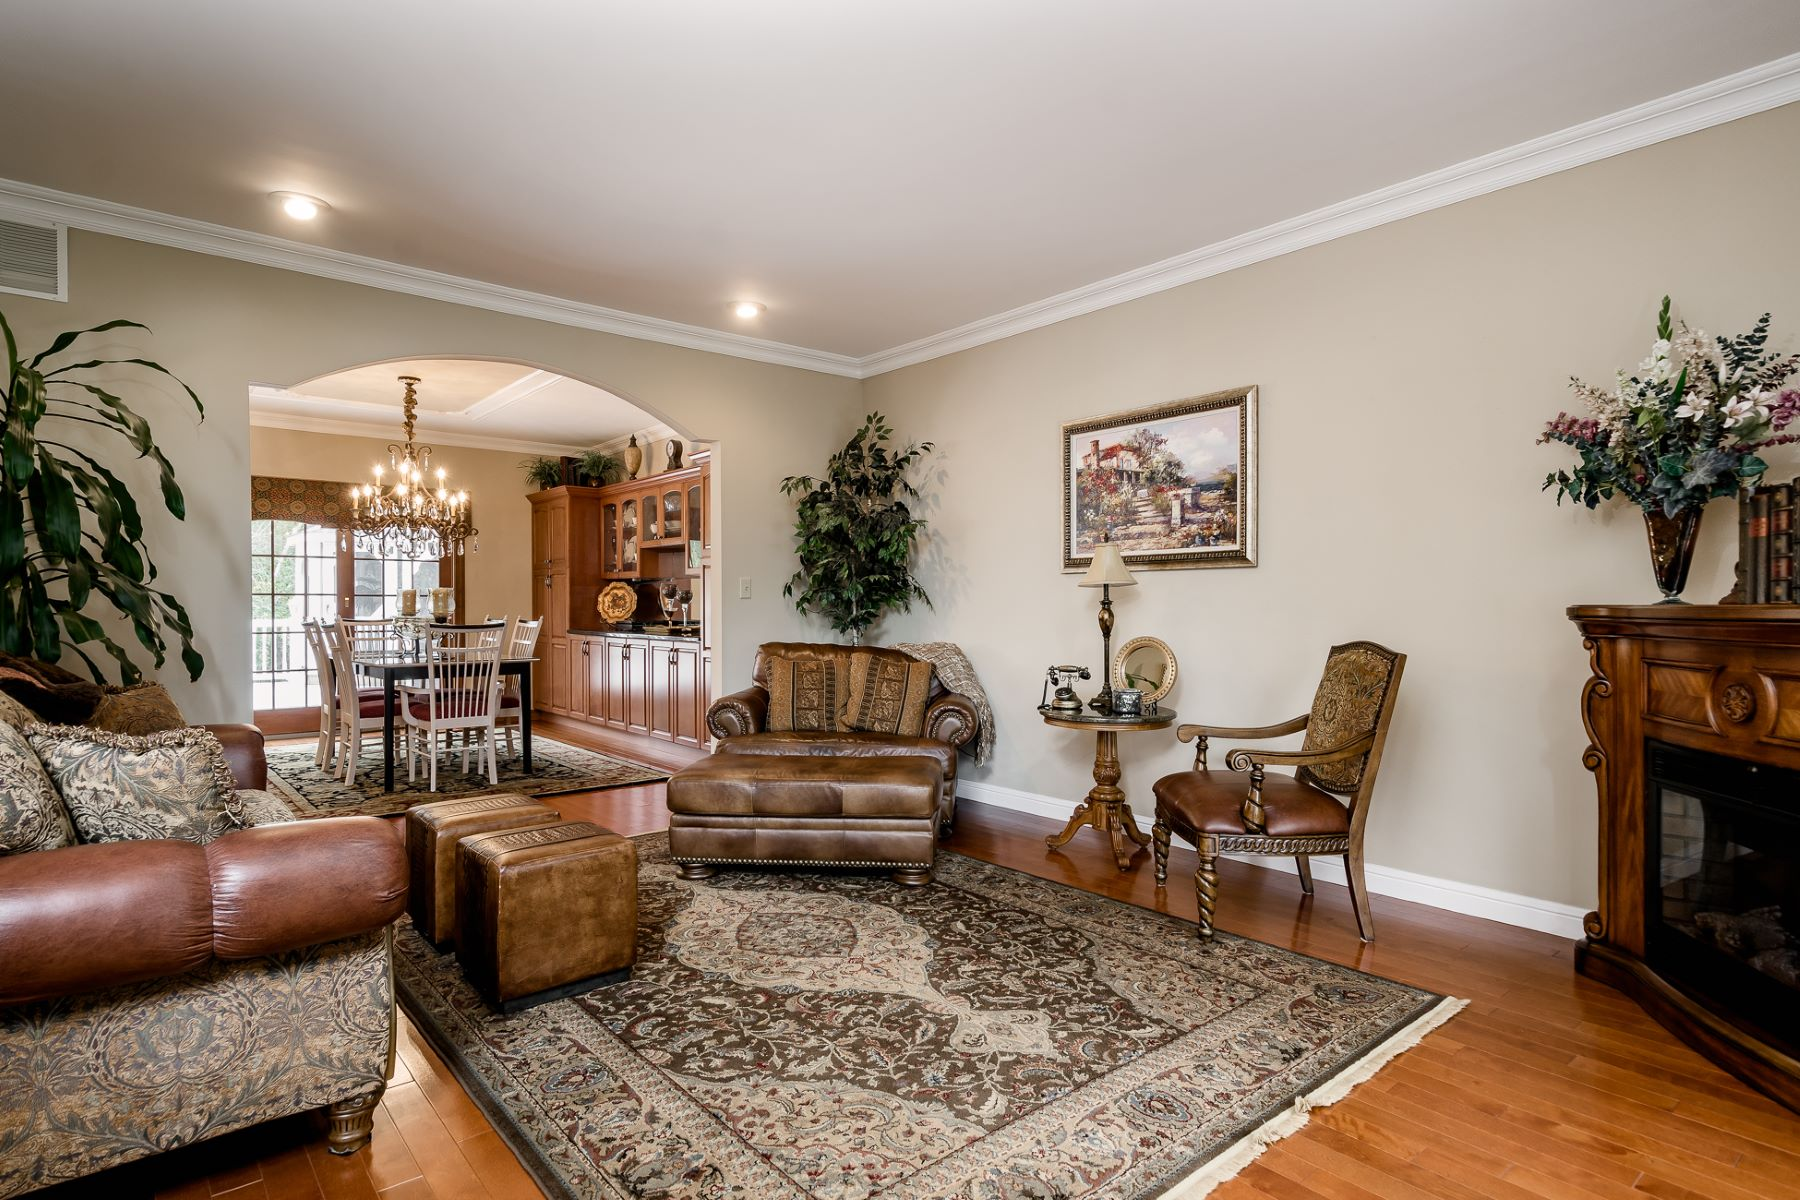 Additional photo for property listing at Reinterpreting Tradition in Monmouth Junction 34 Anderson Way, Monmouth Junction, New Jersey 08852 United States